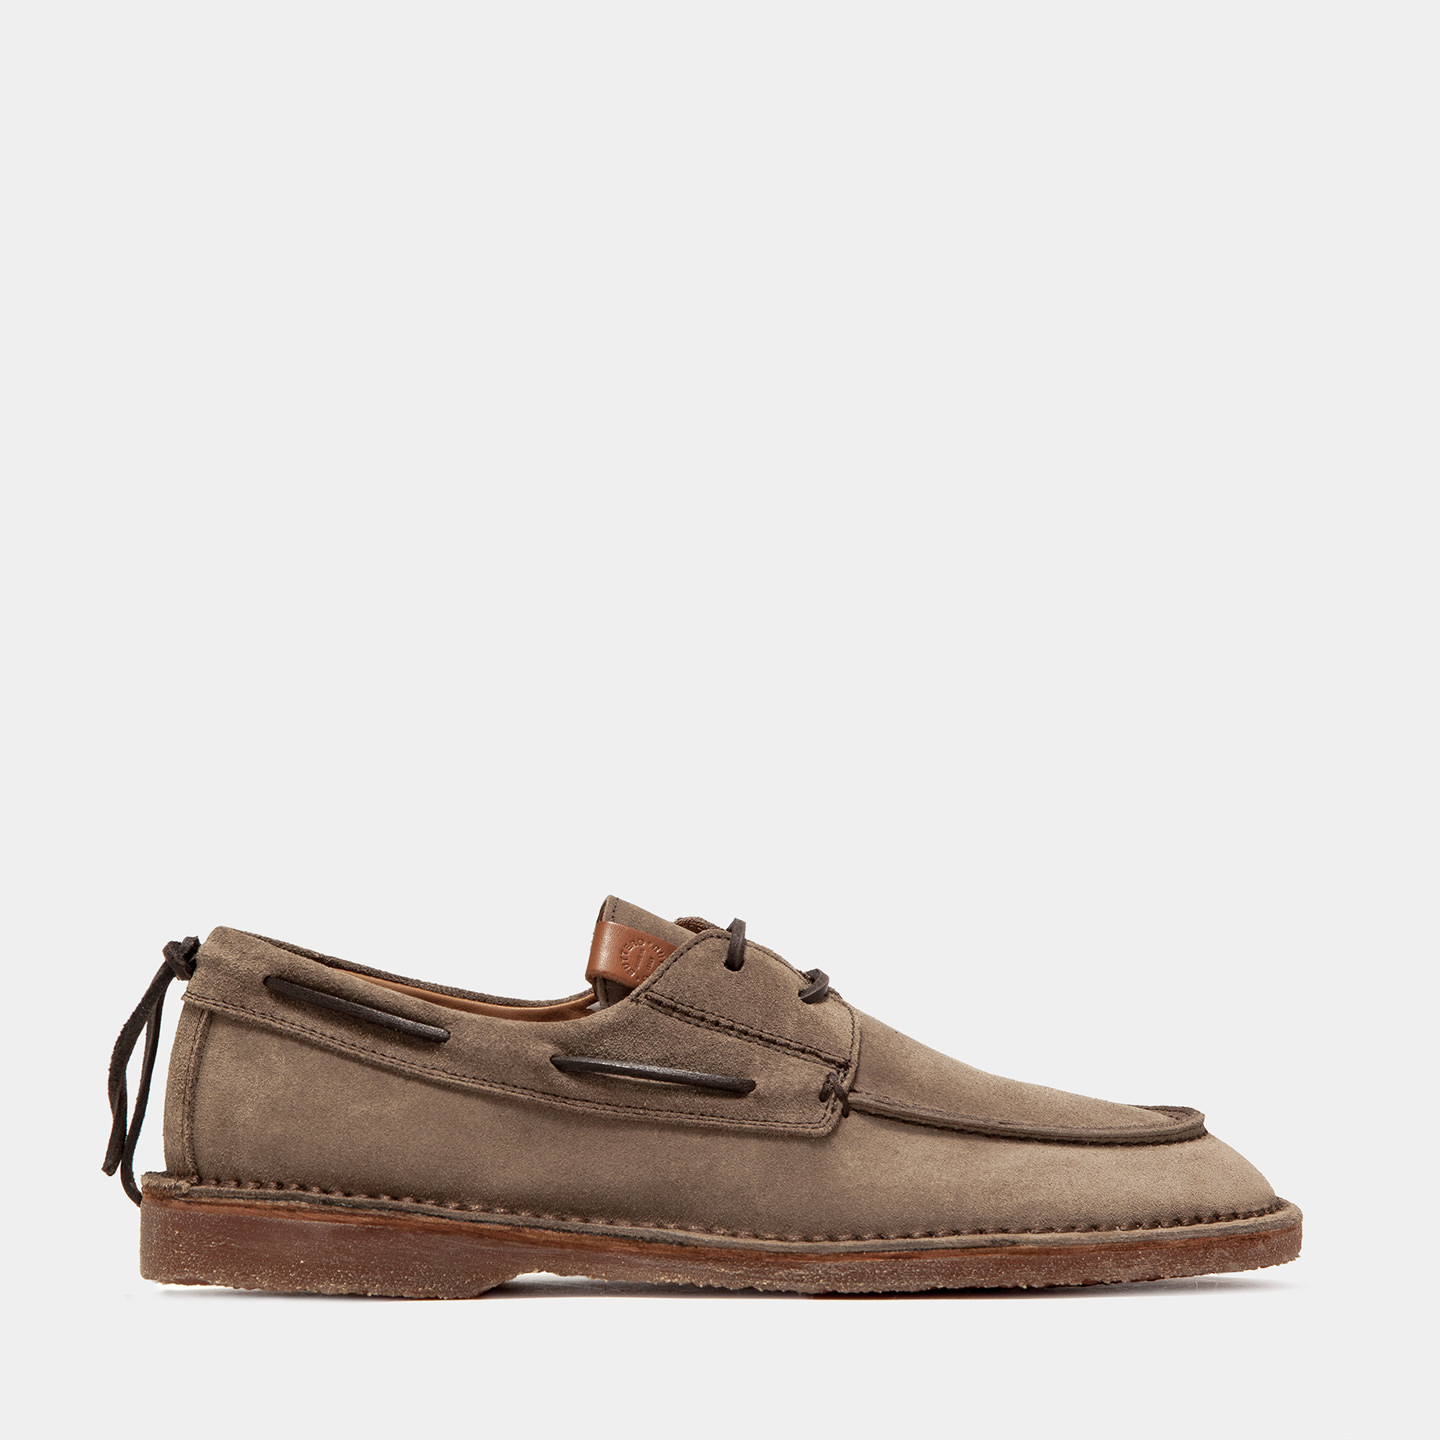 BUTTERO: ARGENTARIO BOAT SHOES IN COCONUT LEATHER